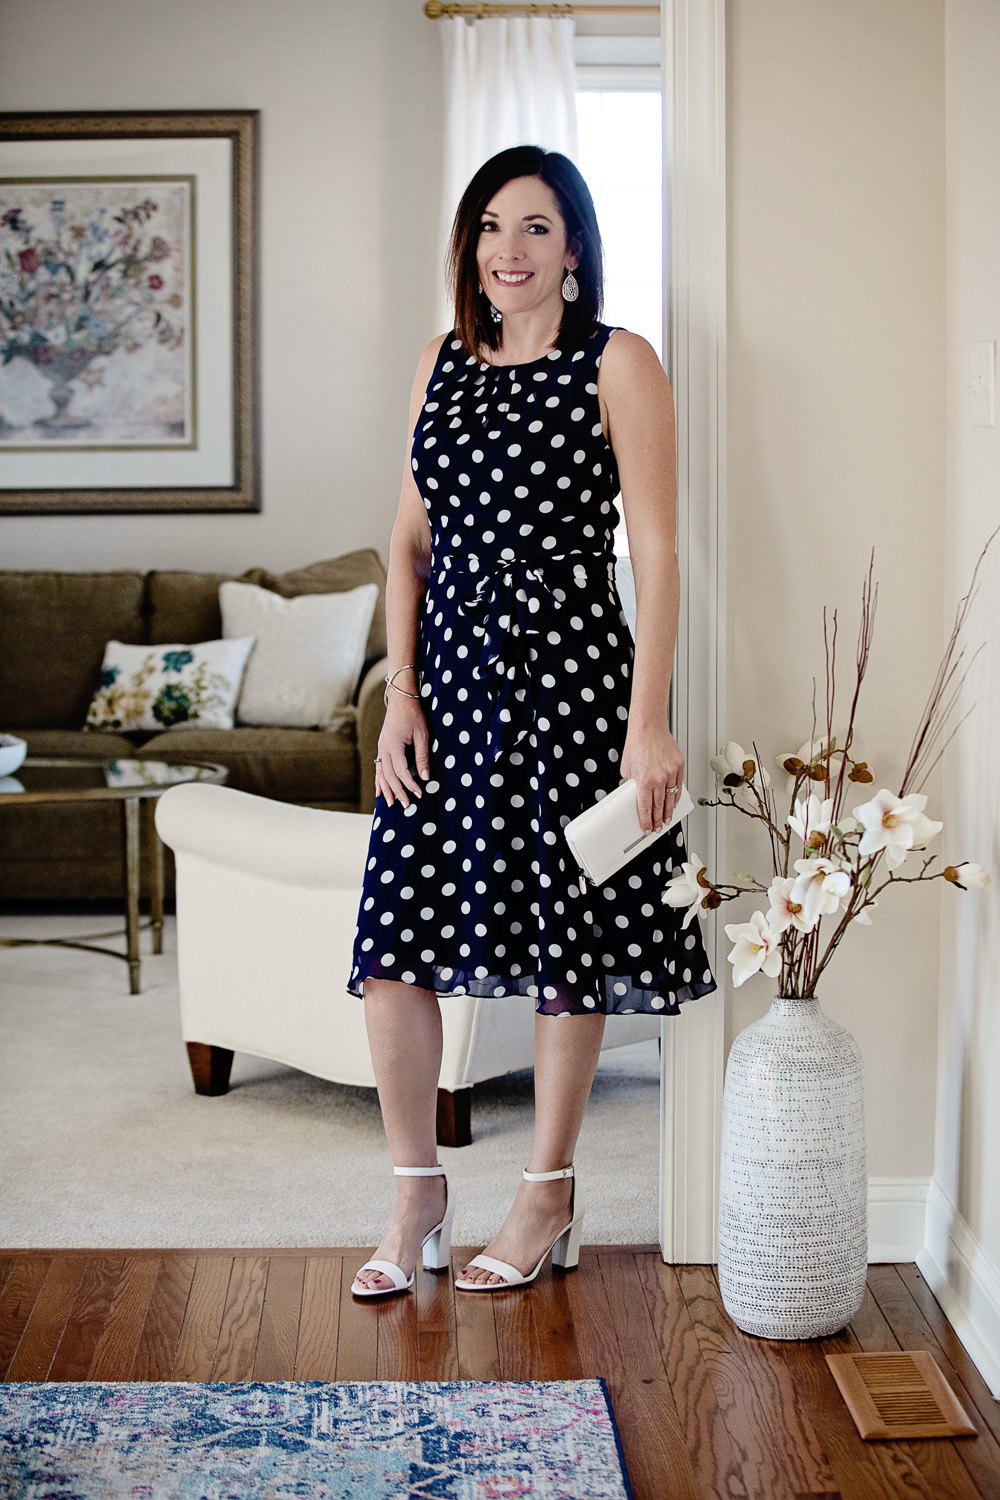 Spring Style with JCPenney: Polkadot Chiffon Fit & Flare Dress with white ankle strap sandals | Easter Dress | Spring Dress | Fashion for Women Over 40